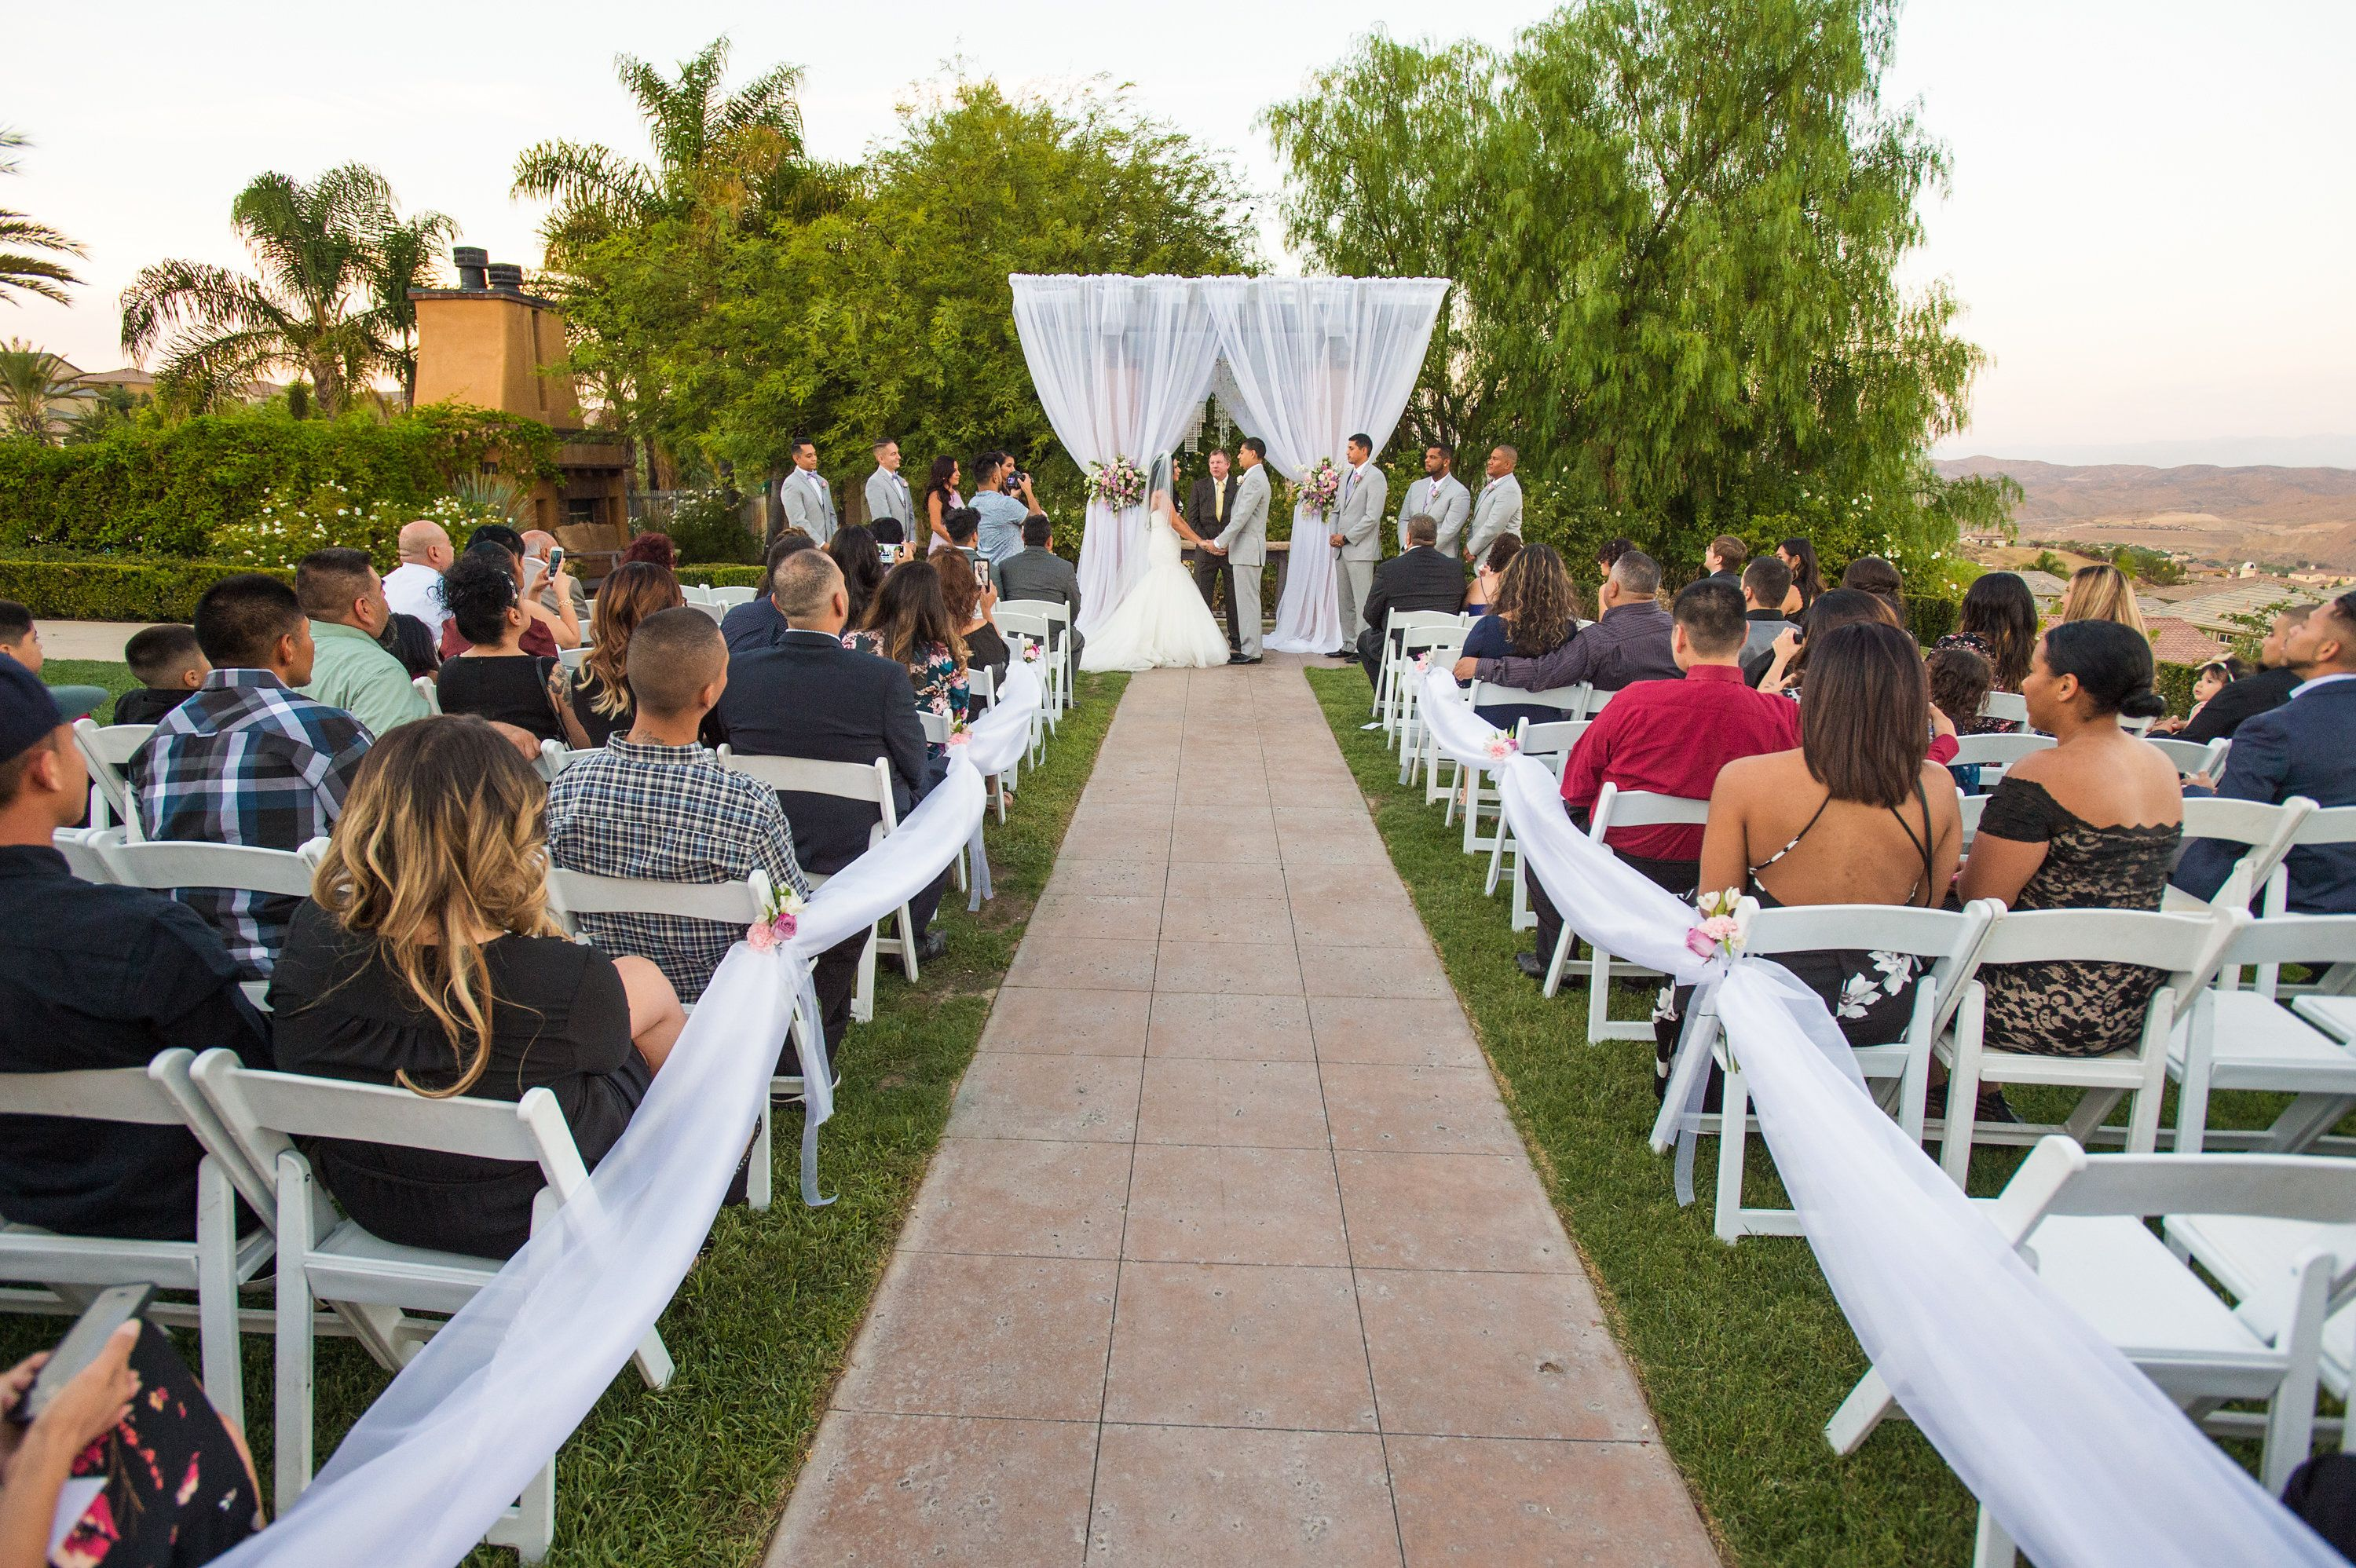 The place to wed in Corona, California. This venue is ...